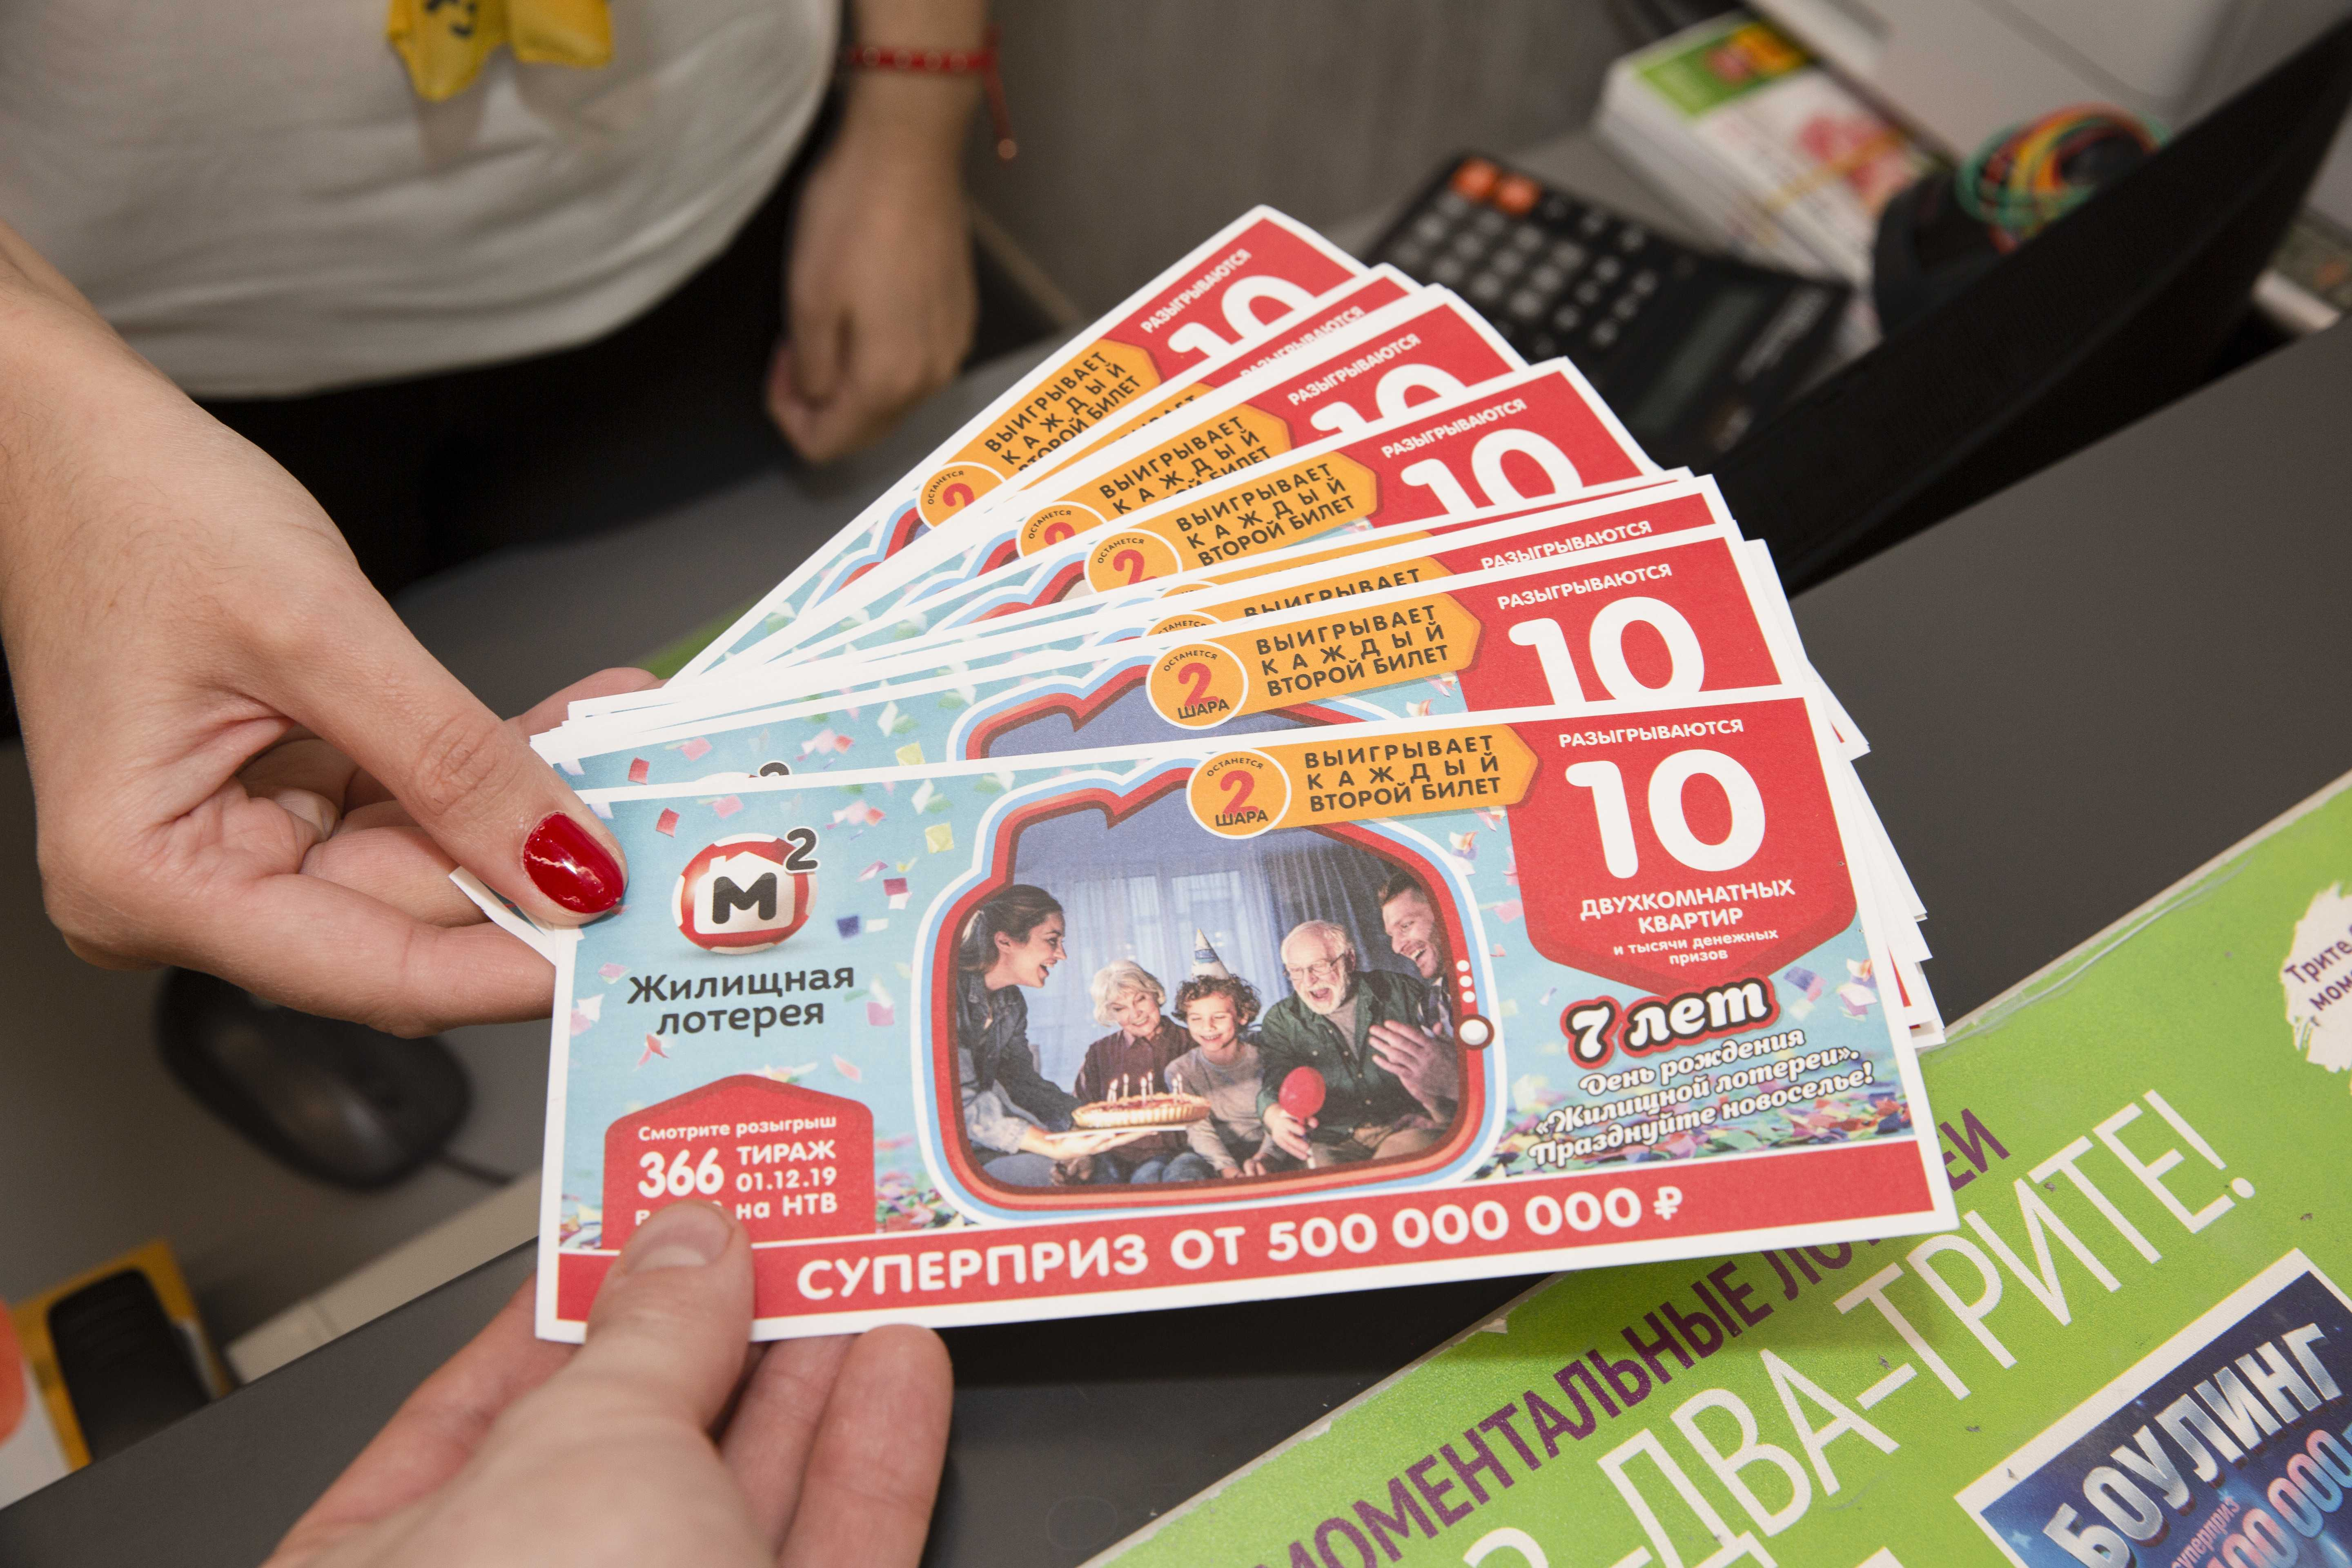 Check lottery ticket online - all lotteries in russia on loto-proverit.com